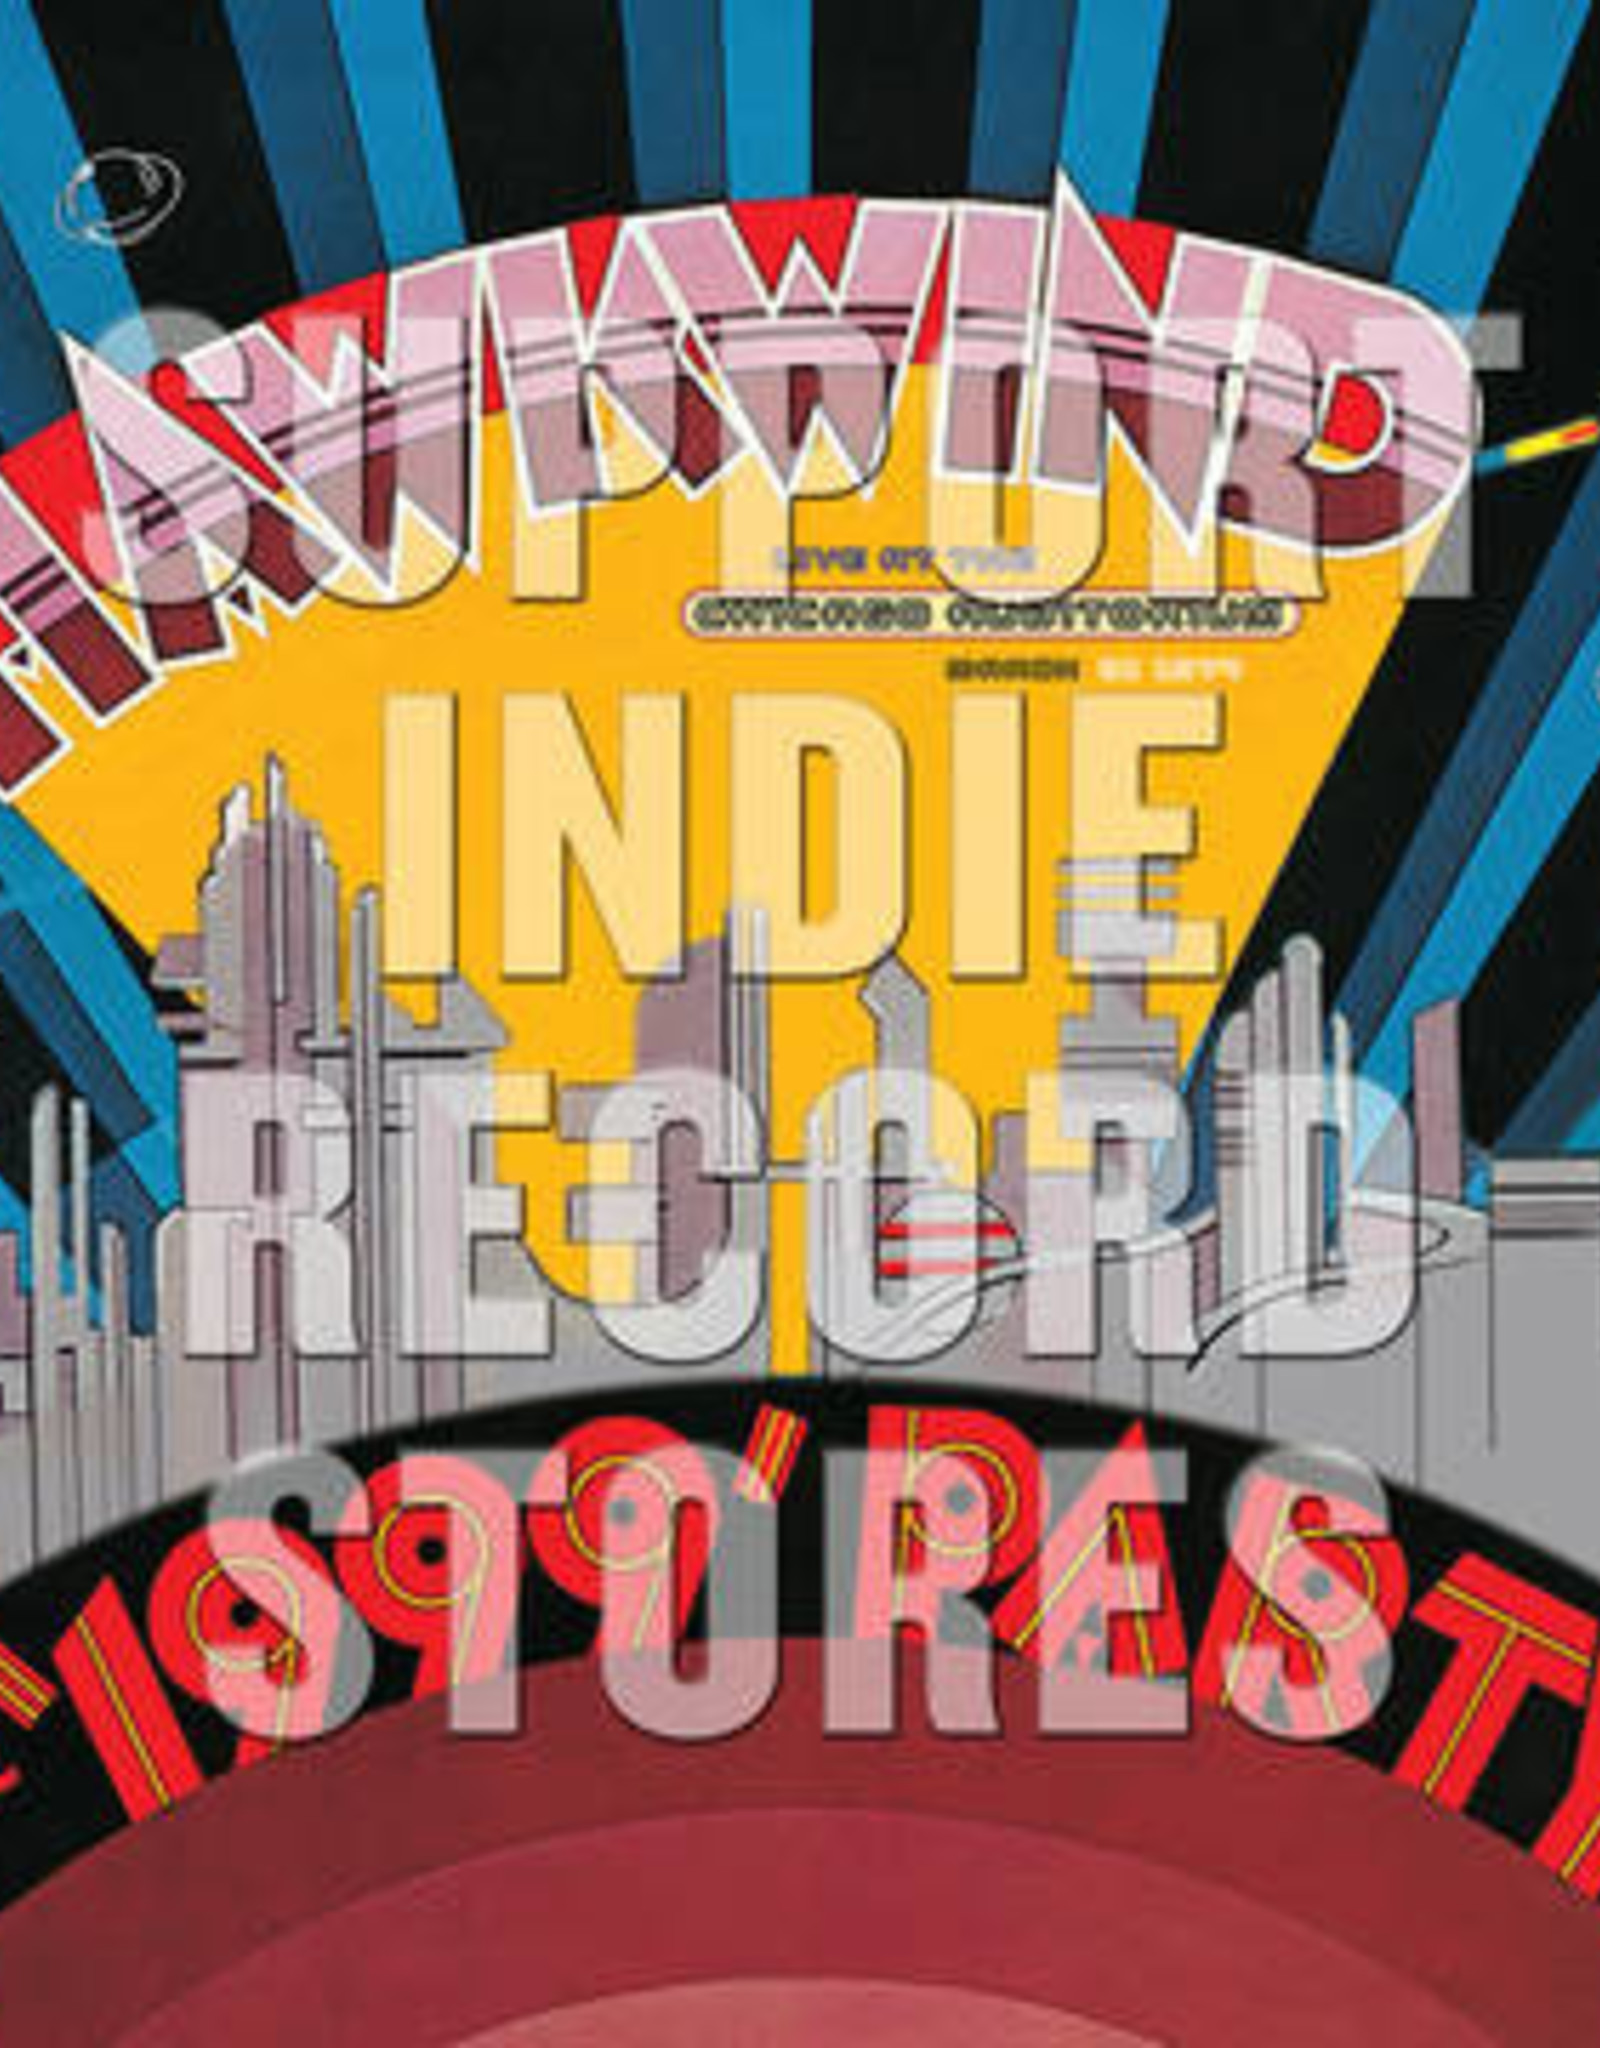 Hawkwind - The 1999 Party - Live At The Chicago Auditorium 21St March, 1974 (2Lp) (RSD 2019)